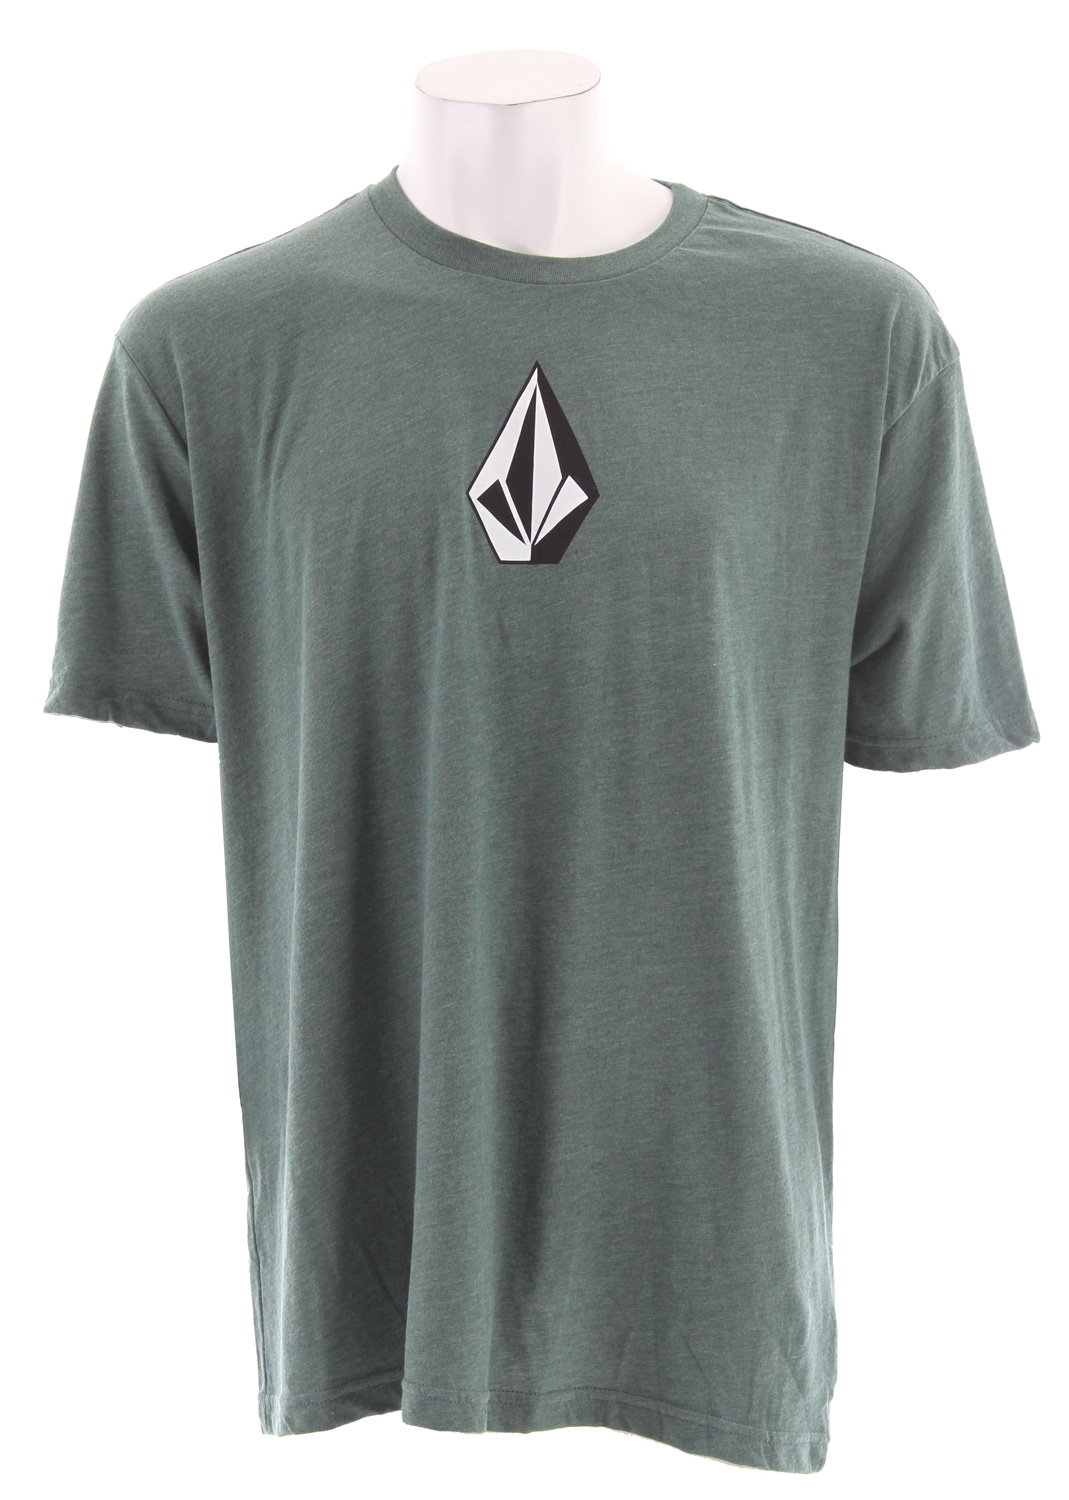 Surf Key Features of The Volcom The Stone Three Heather T-Shirt: Regular Fit Crew Neck Short Sleeve Basic screenprint 50/50 Cotton/Poly jersey - $16.95